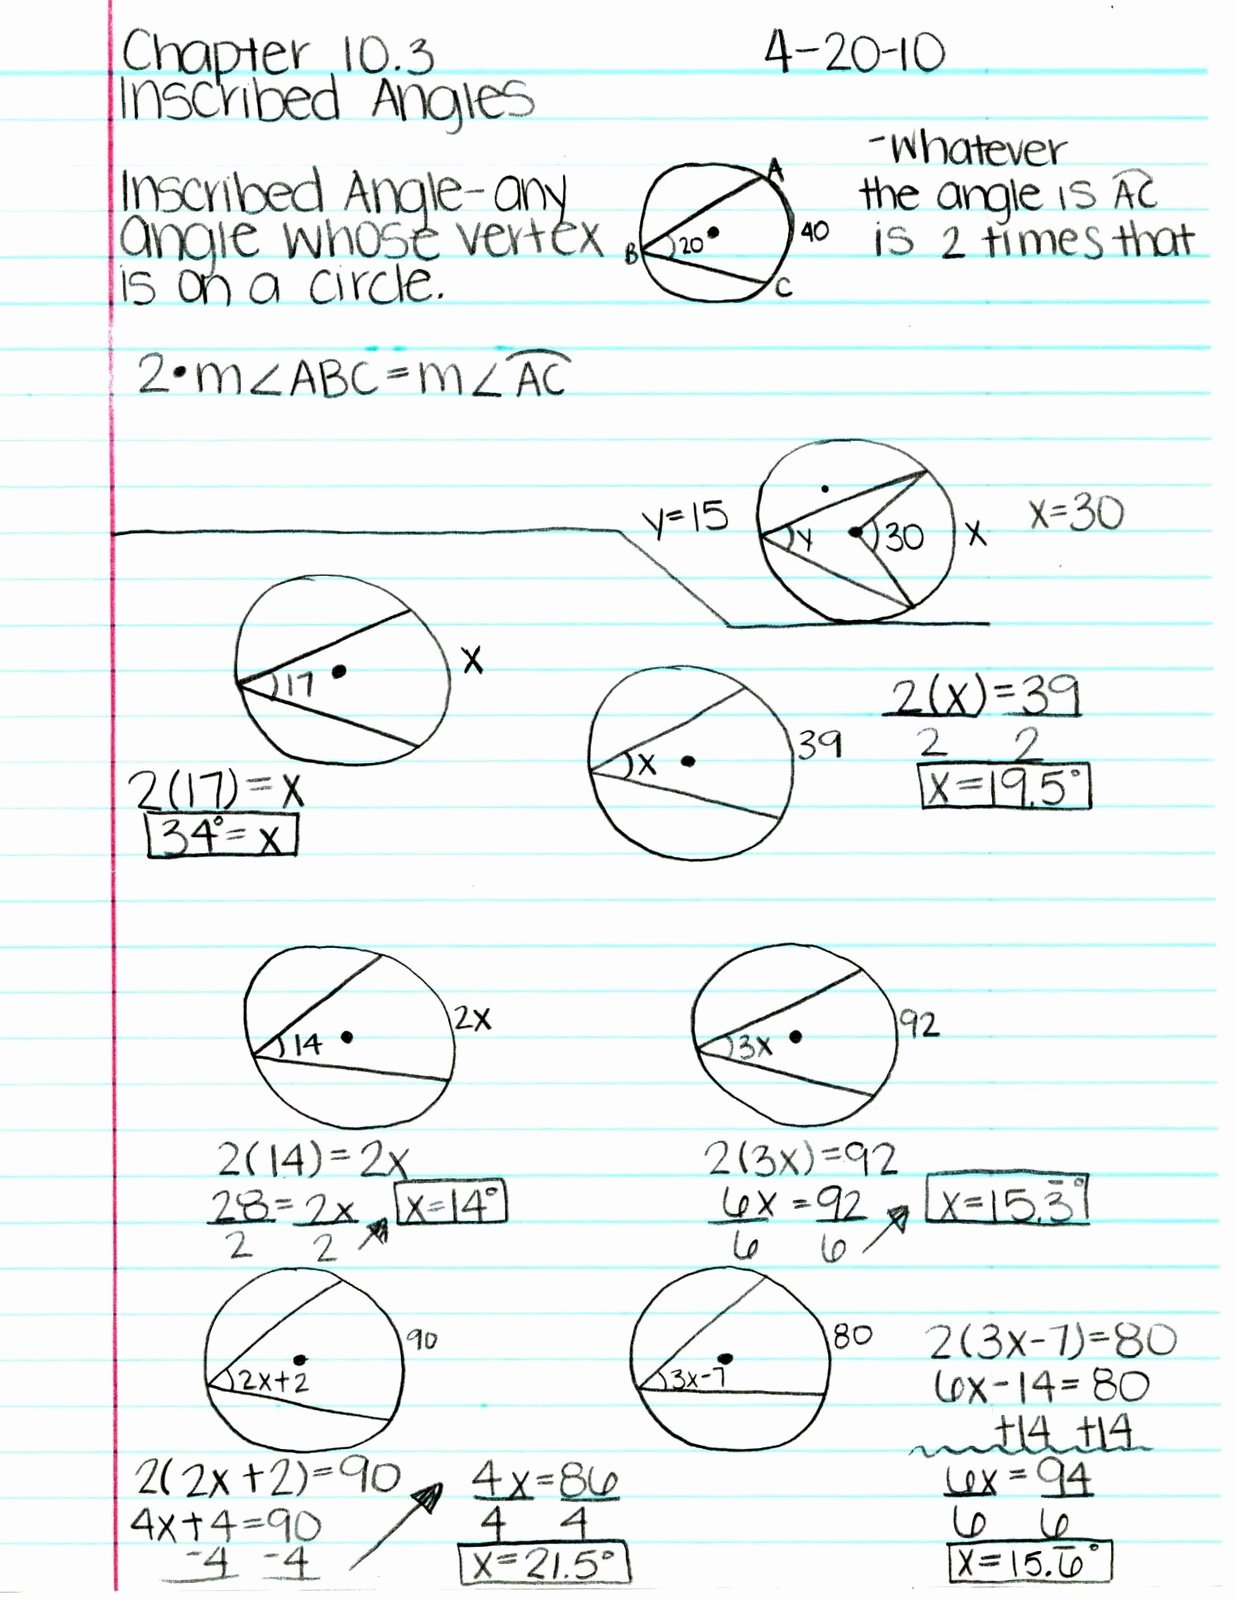 Angles In Circles Worksheet New Mr Ryals Geometry Blog April 2010